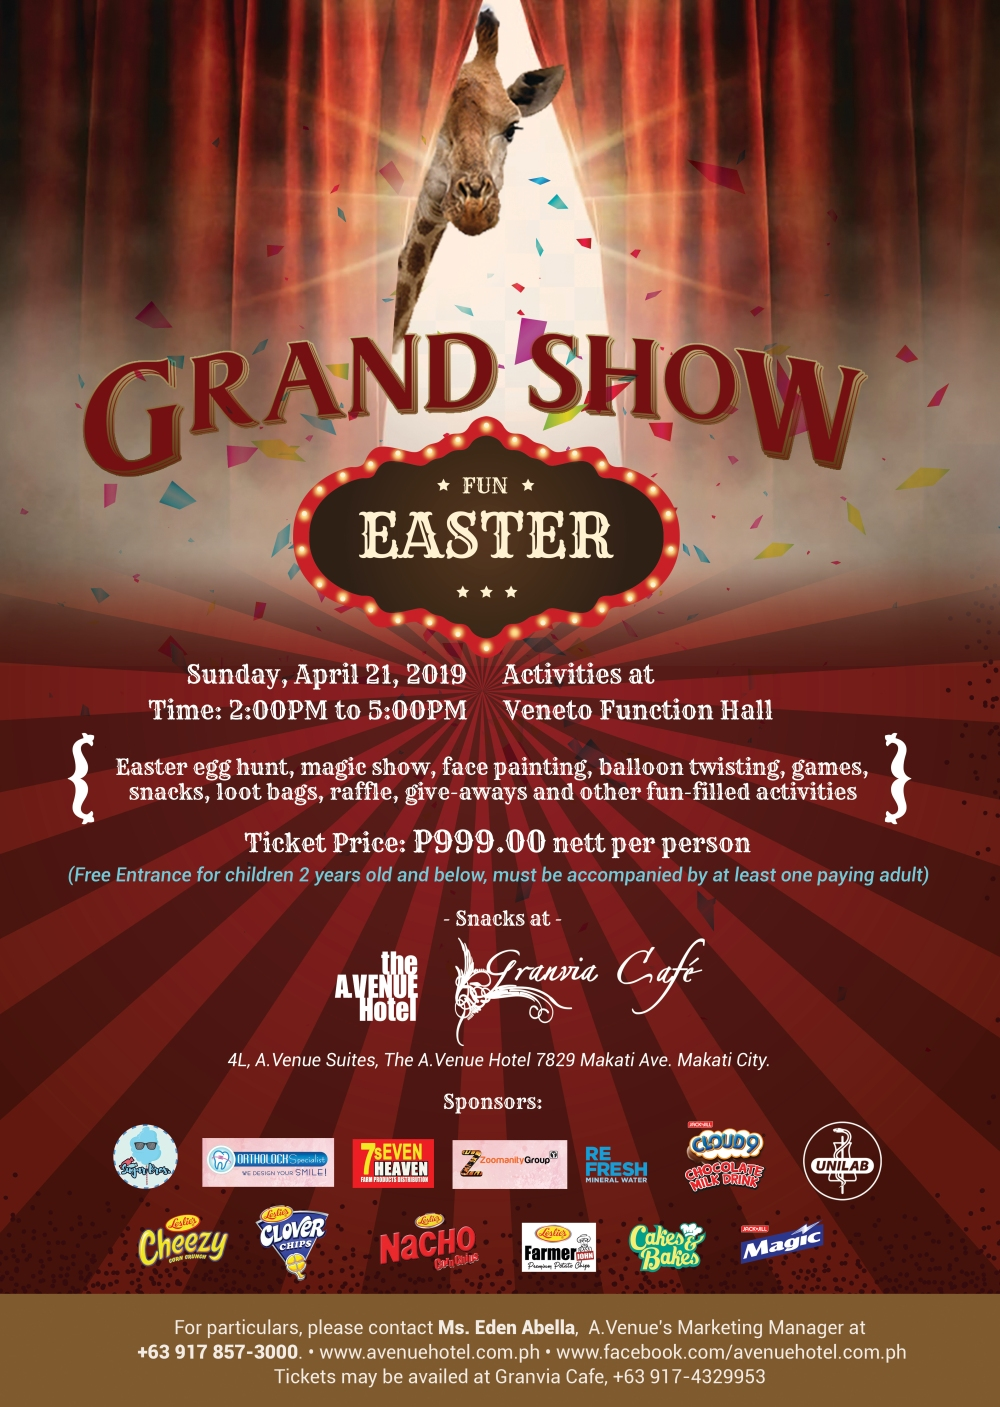 Easter Grandshow April 21, 2019